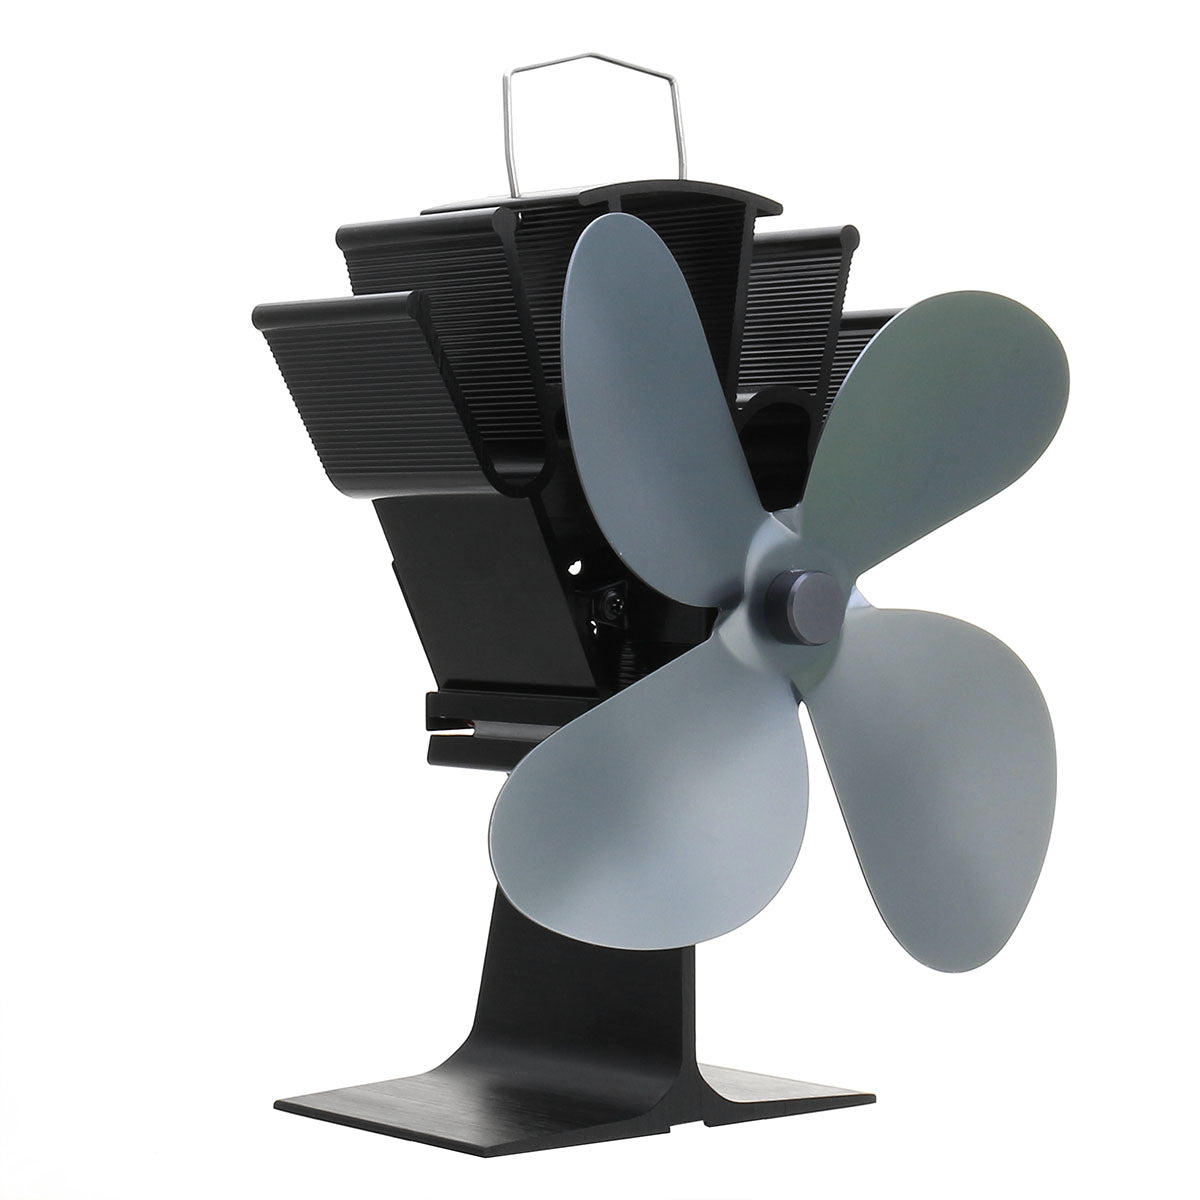 cozyrex,4 Blades Fireplace Fan Thermal Heat Power Stove Wood Burner Fan,CozyRex,